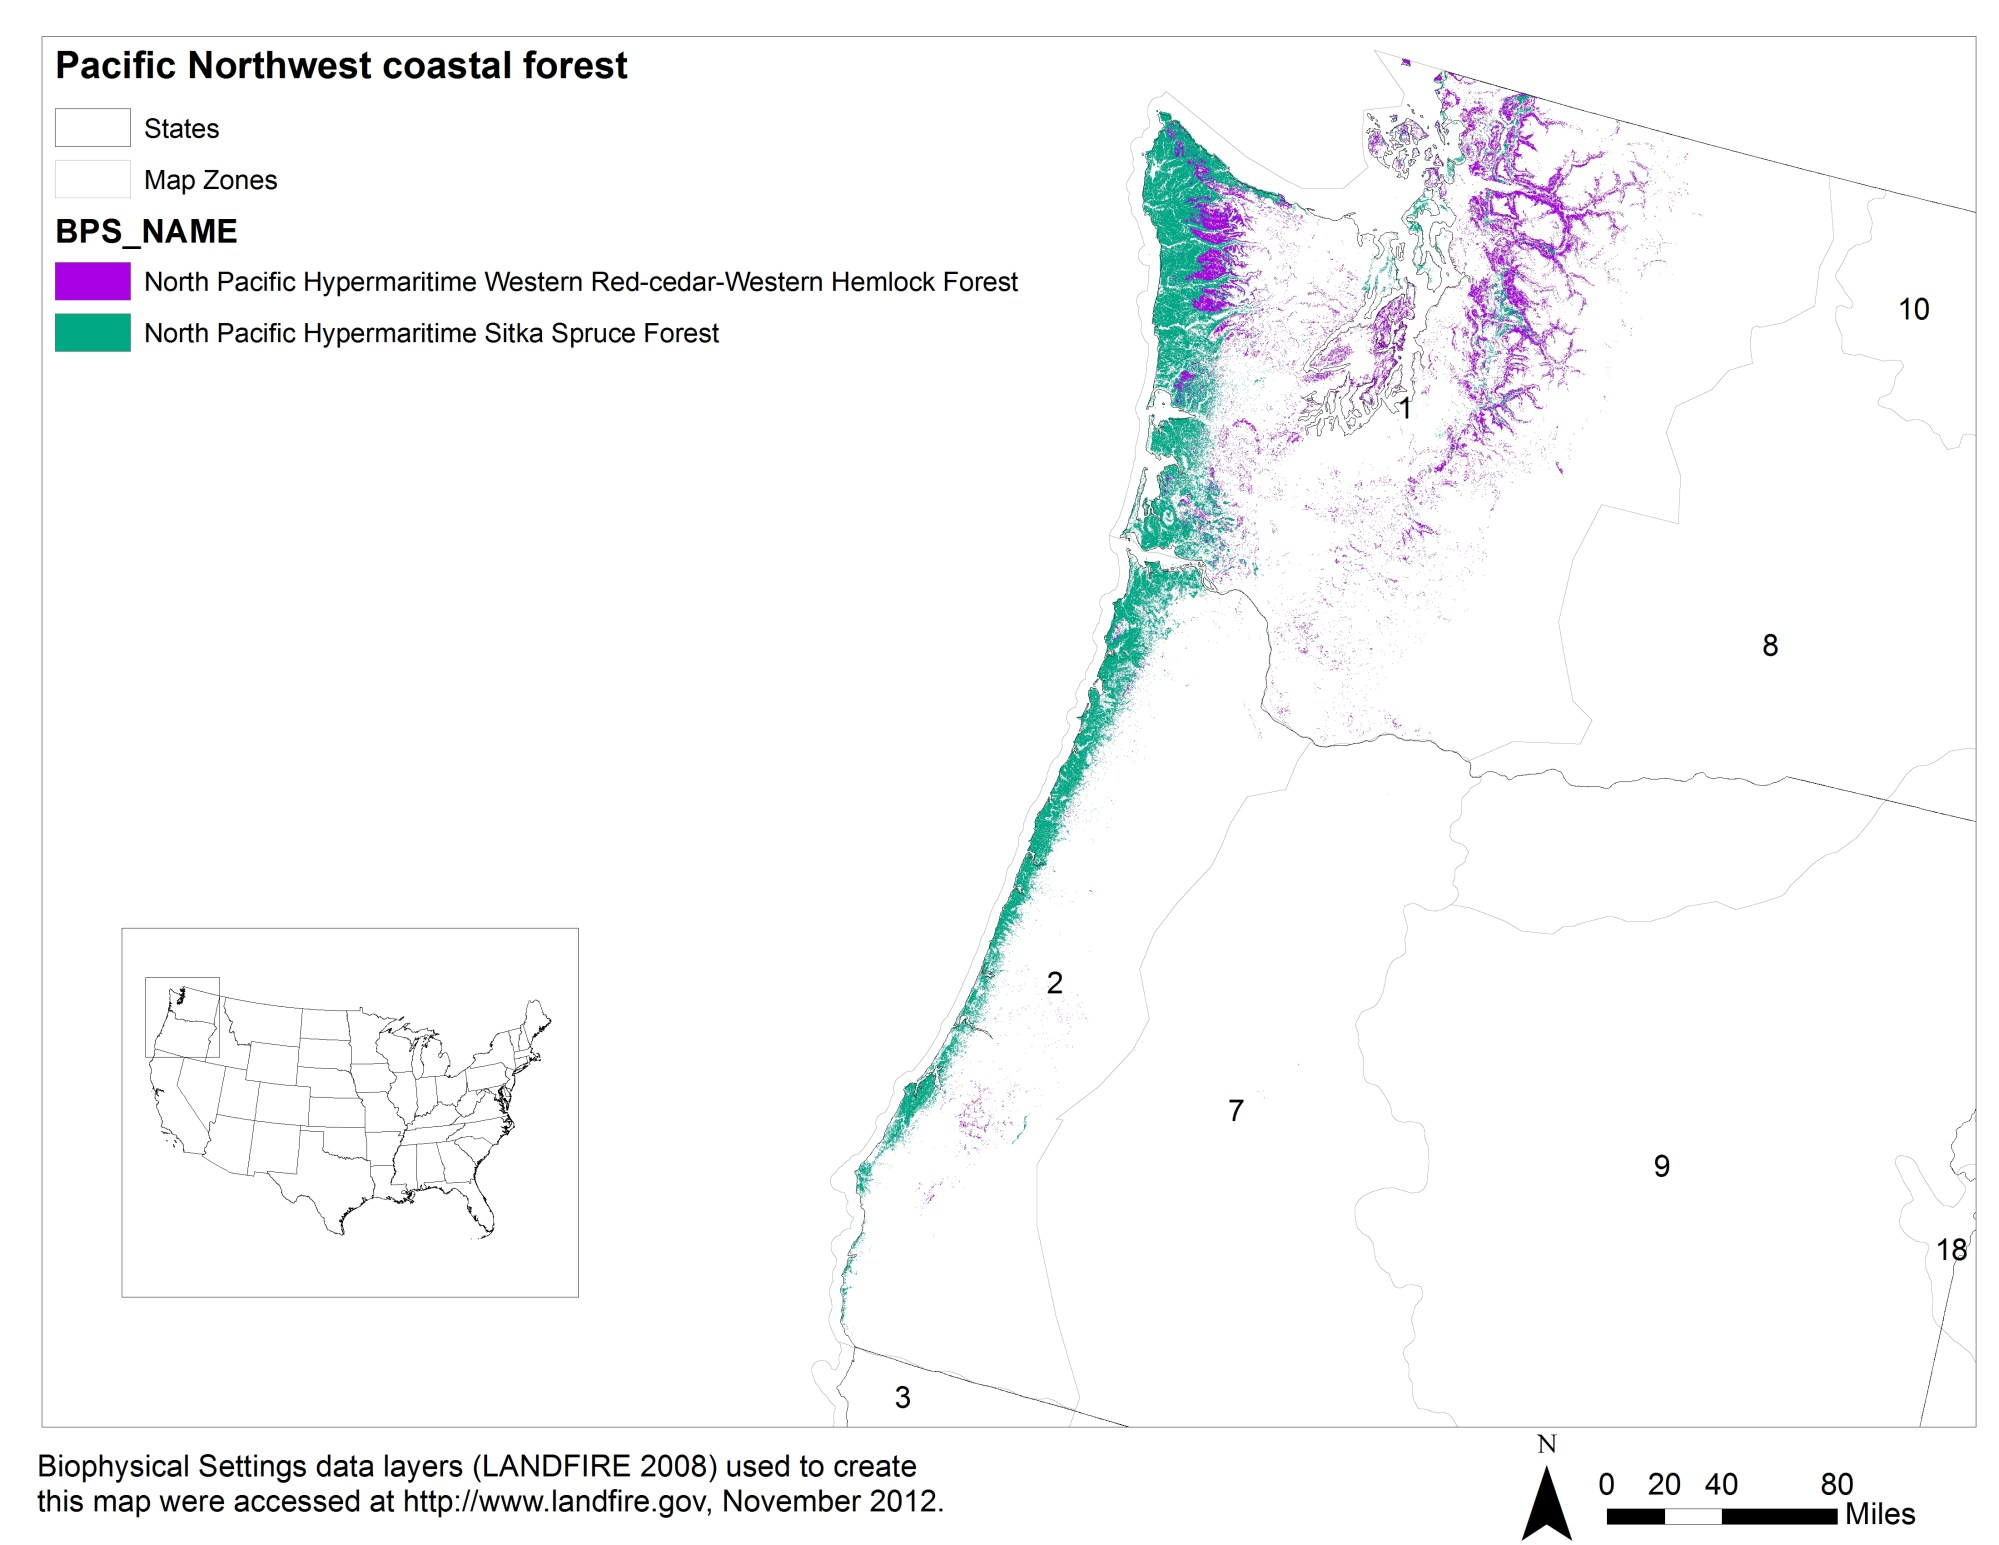 hight resolution of land cover distribution of pacific northwest coastal forests based on the landfire biophysical settings bps data layer 3 numbers indicate landfire map